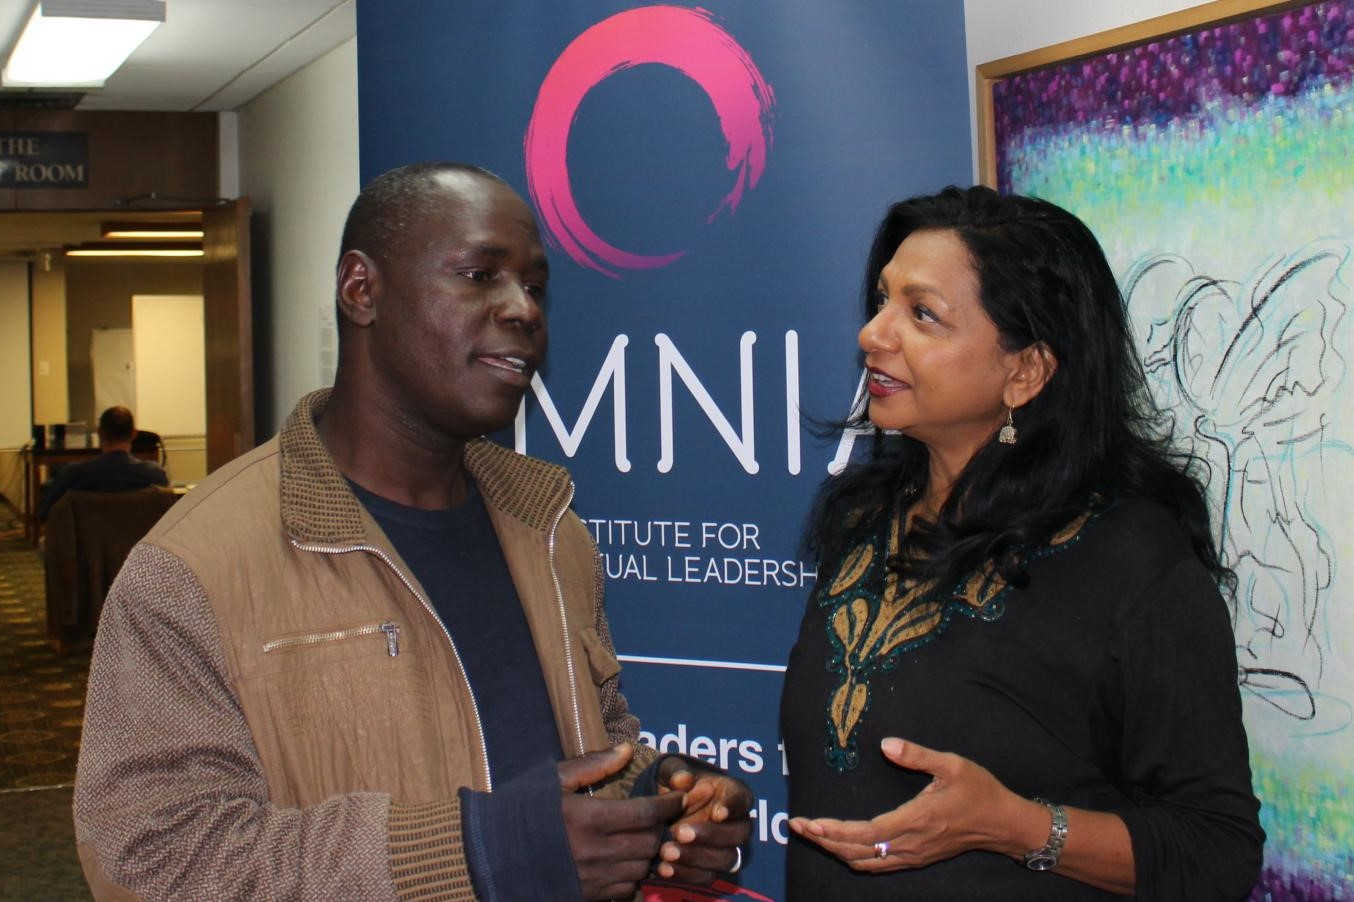 Omnia Leaders Featured in Christian Century